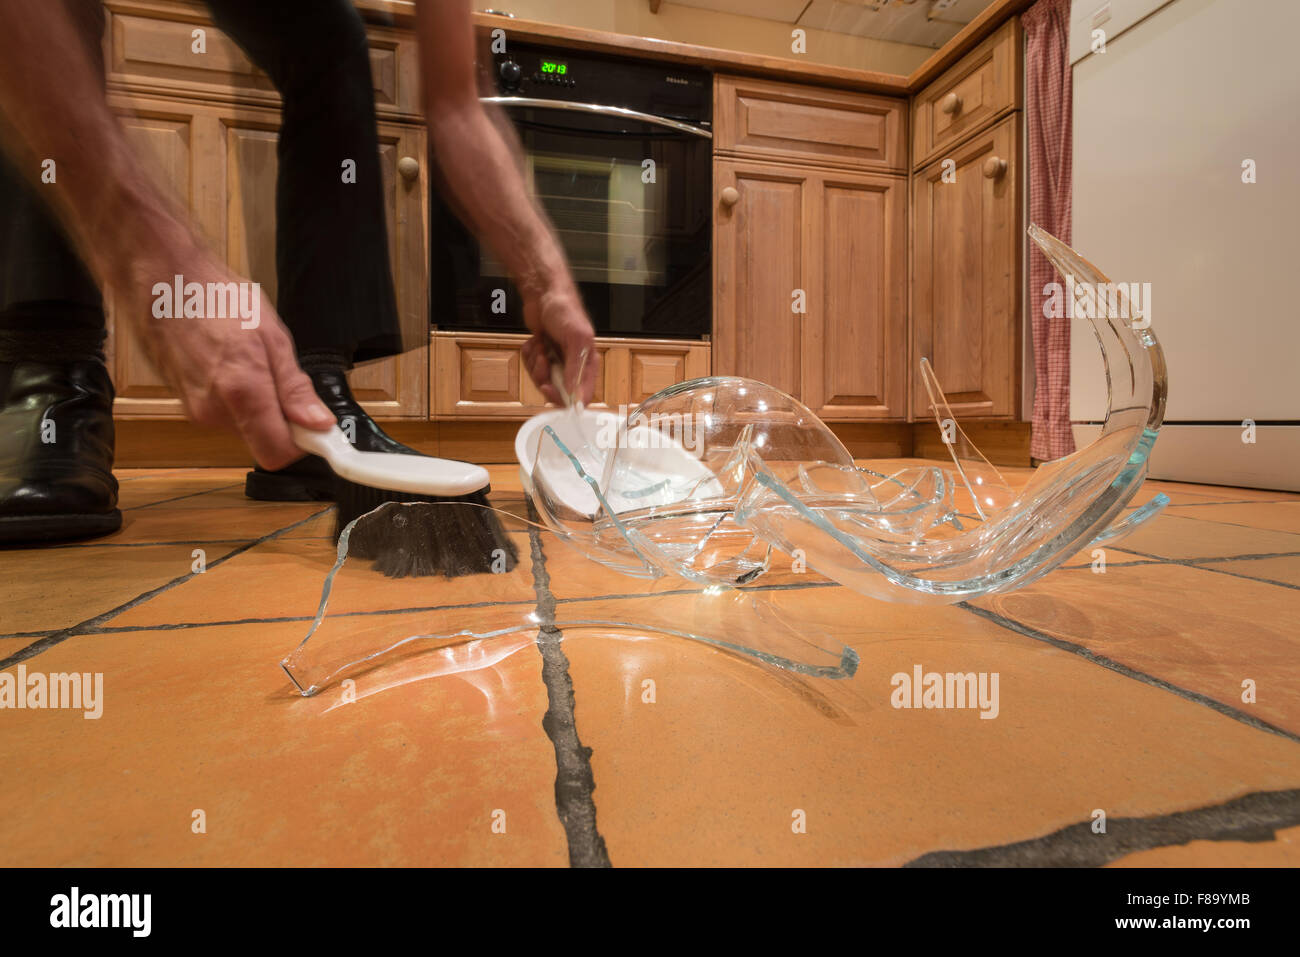 remnants pile of broken glass on floor after accident and pyrex glass bowl slipped out of wet hands knocked over - Stock Image